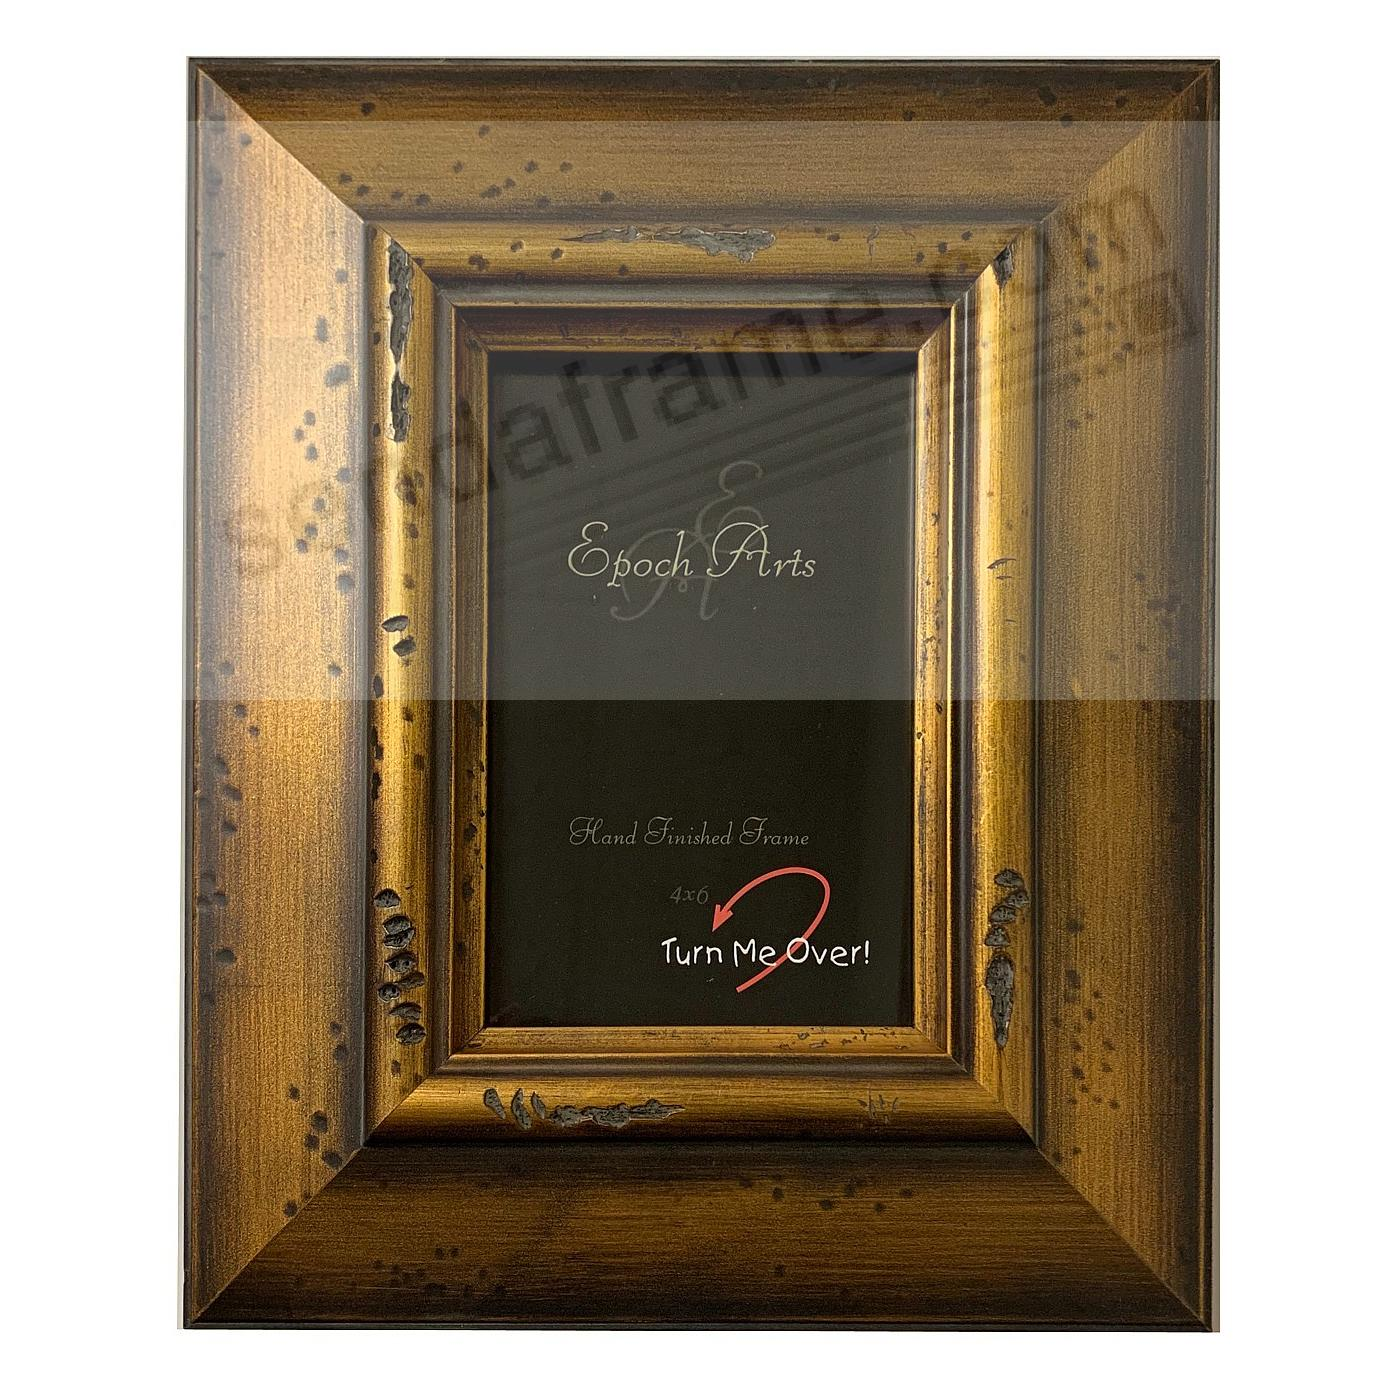 Distressed Gold 4x5 By Epoch Arts Picture Frames Photo Albums